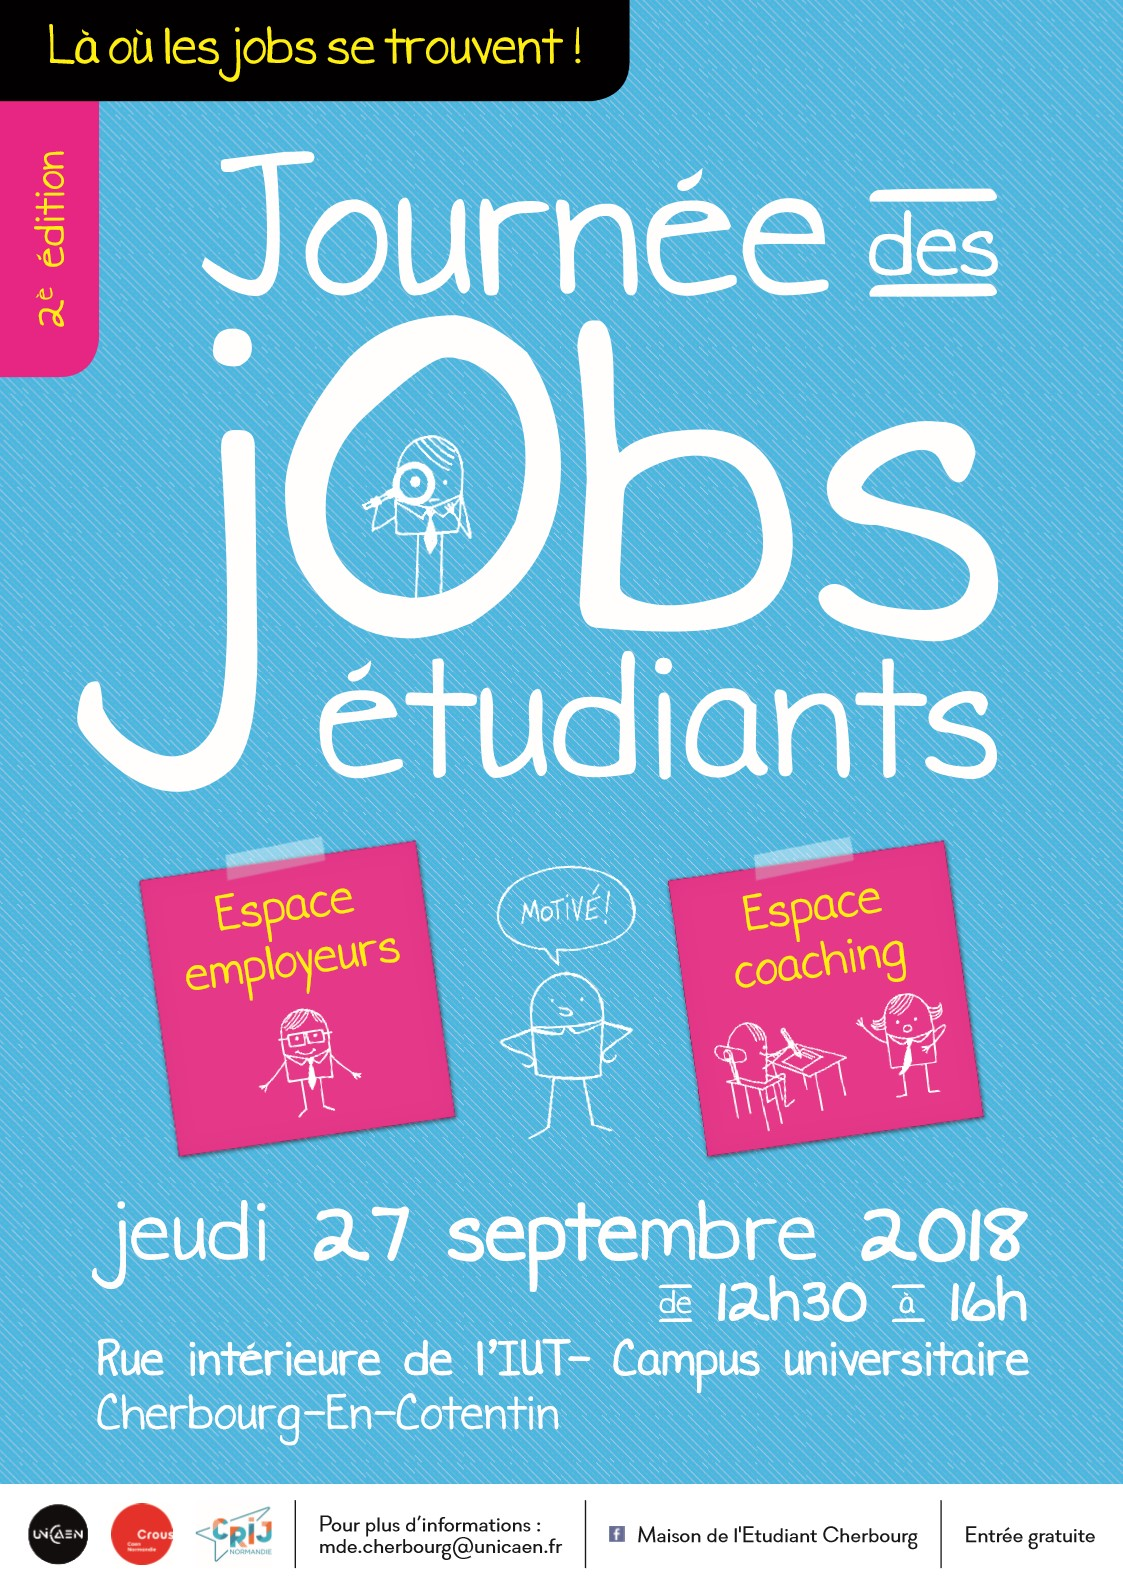 journ u00e9e jobs  u00e9tudiants  u2013 2e  u00e9dition  u2013 cherbougetoi  le blog